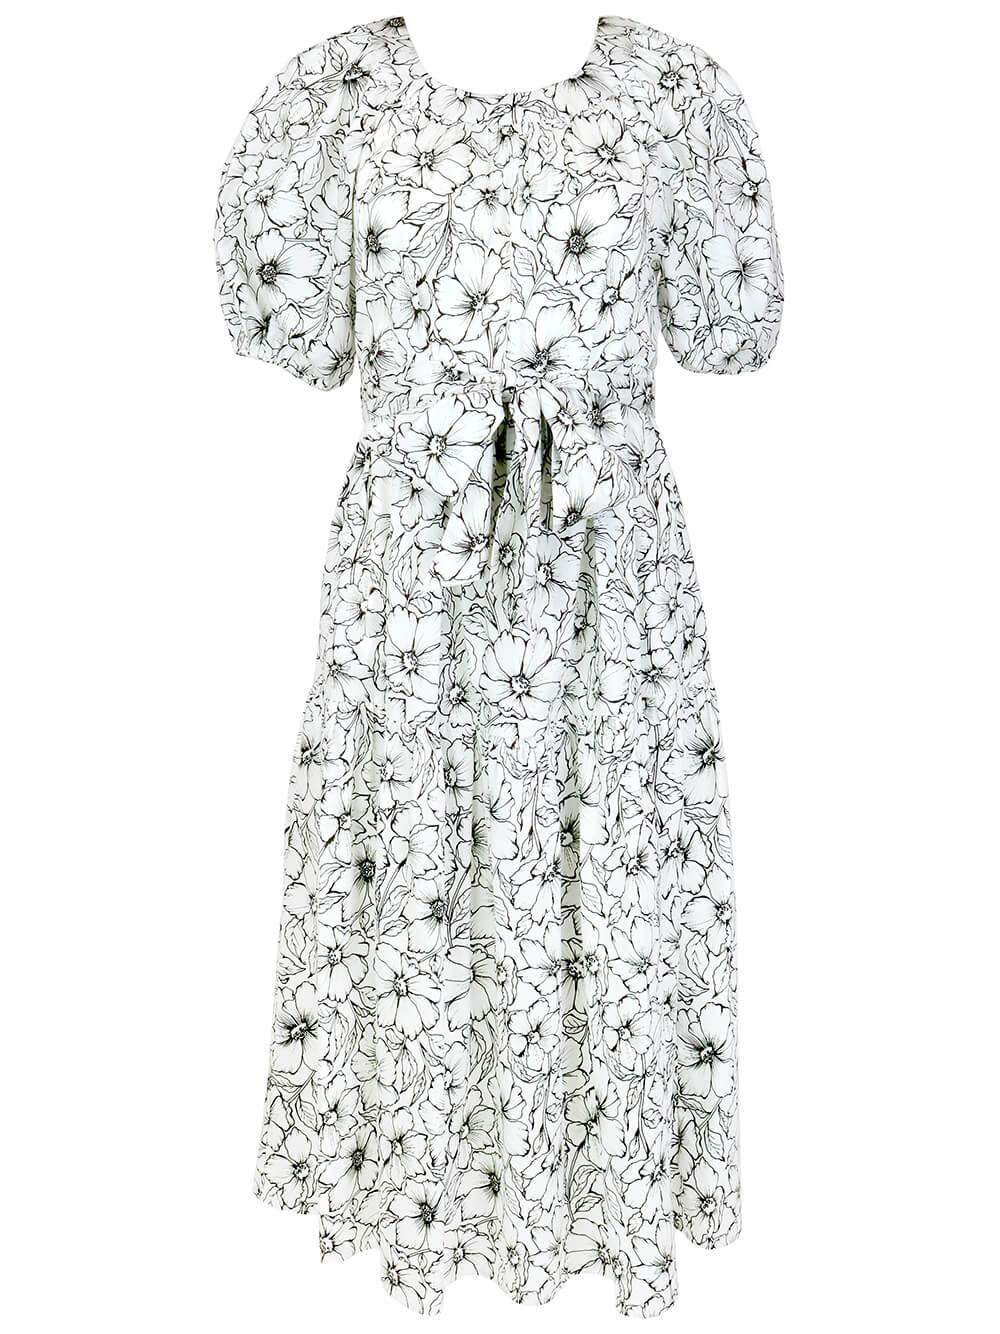 Audrey Etched Floral Dress